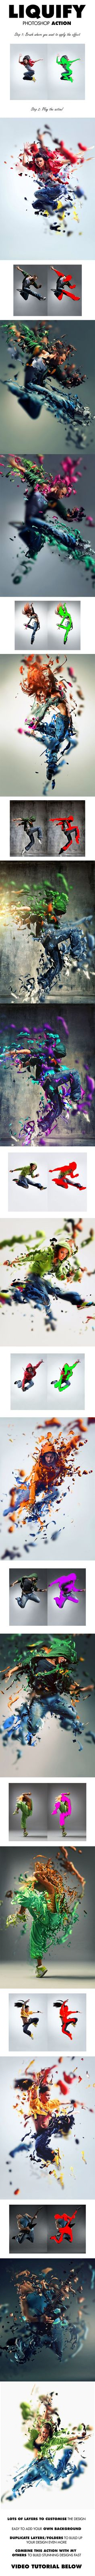 Liquify Photoshop Action - Create flowing liquid forms from your photos with this action. All you need to do is brush where you want to create the effect and click play on the action. What can you do after the action has finished? Move the parts around wherever you want Change the color of each part Rotate, scale, duplicate the layers to build up the design even more!: